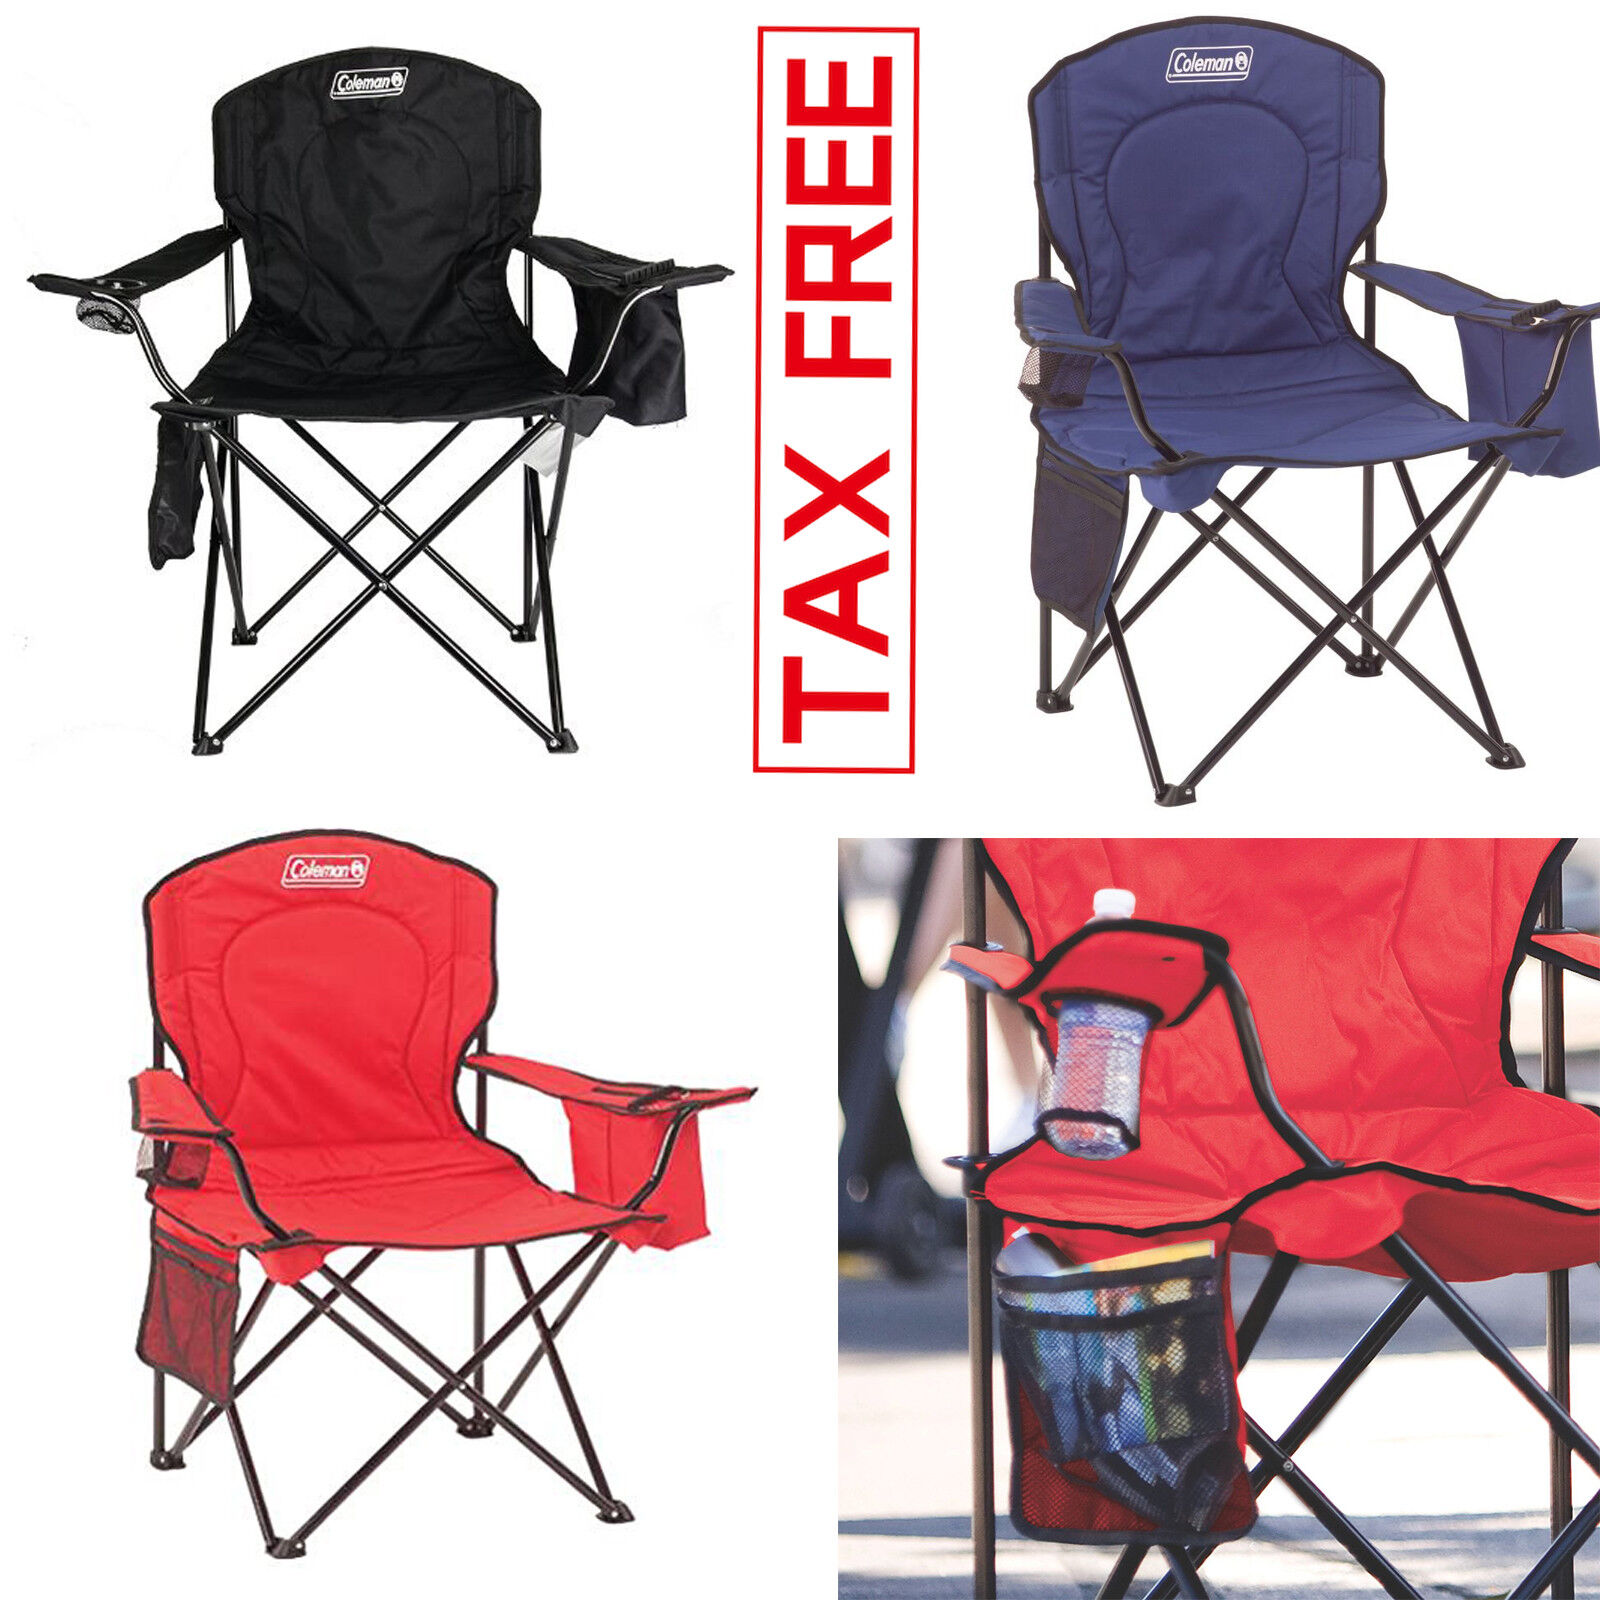 Heavy Duty 350LB Oversized  Camping Portable Folding Beach Chair Seat Cup Holder  exclusive